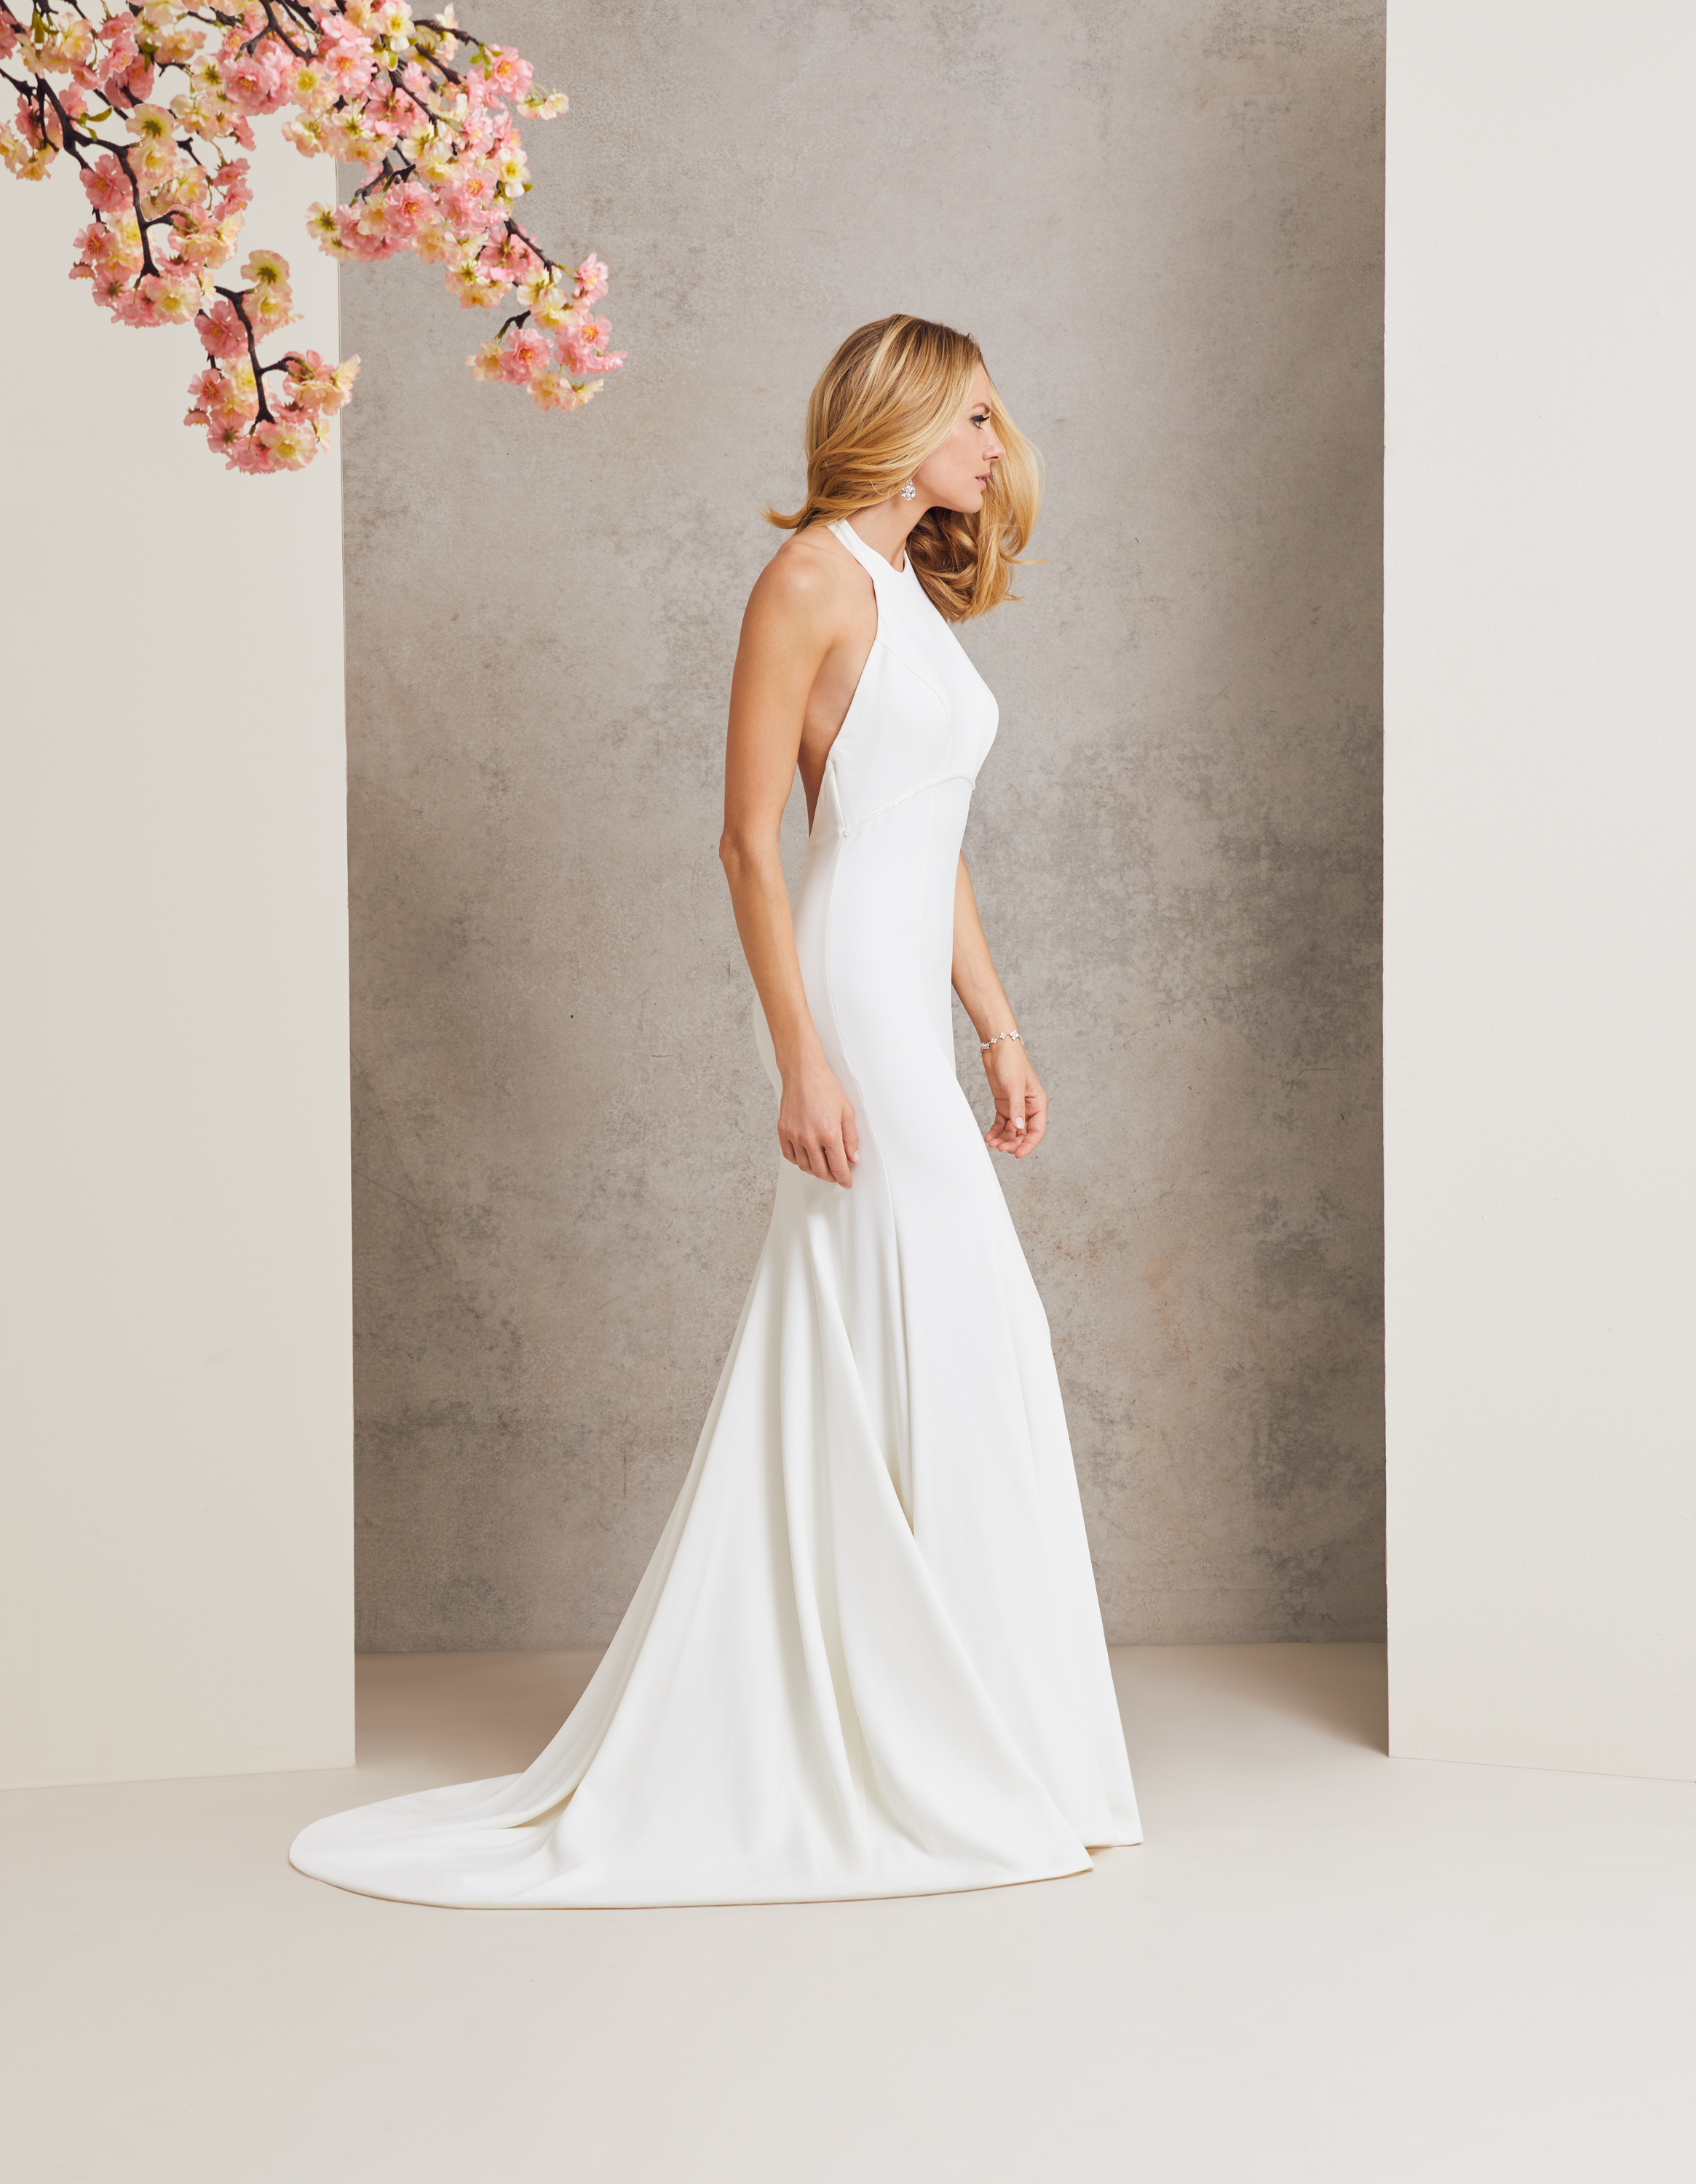 Varnival designer wedding dress by Caroline Castigliano